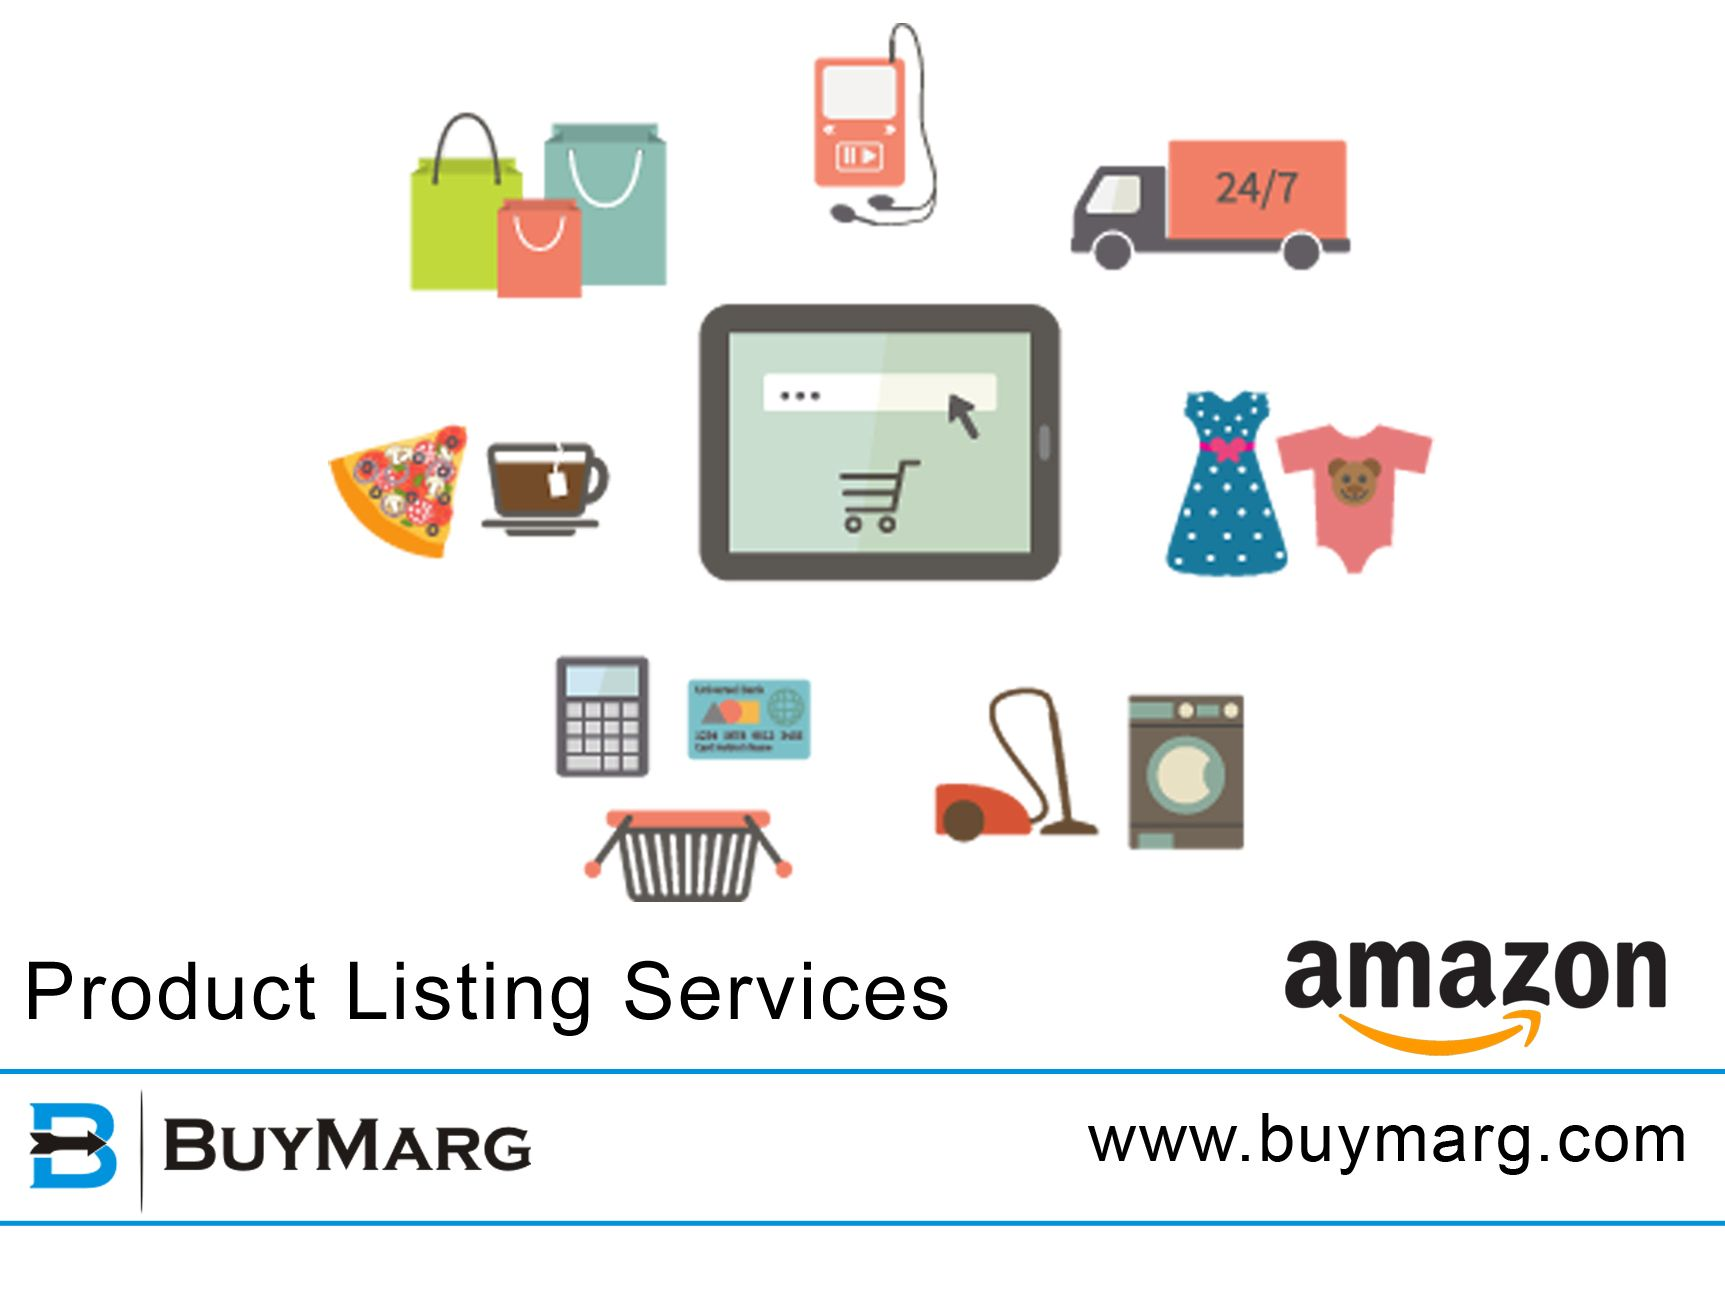 amazon product analysis